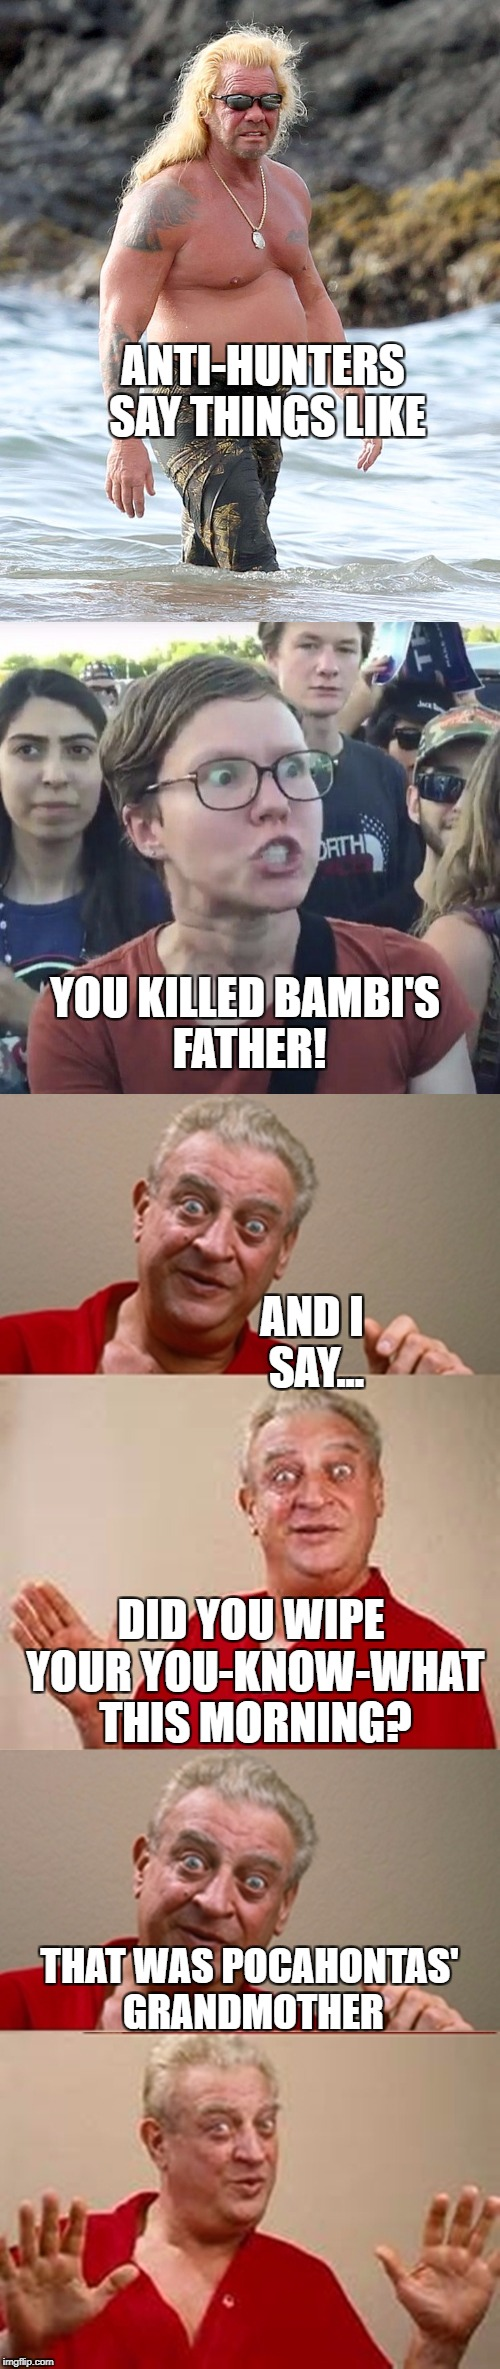 Deer hunter trolls are like... | ANTI-HUNTERS SAY THINGS LIKE YOU KILLED BAMBI'S FATHER! AND I SAY... DID YOU WIPE YOUR YOU-KNOW-WHAT THIS MORNING? THAT WAS POCAHONTAS' GRAN | image tagged in memes | made w/ Imgflip meme maker